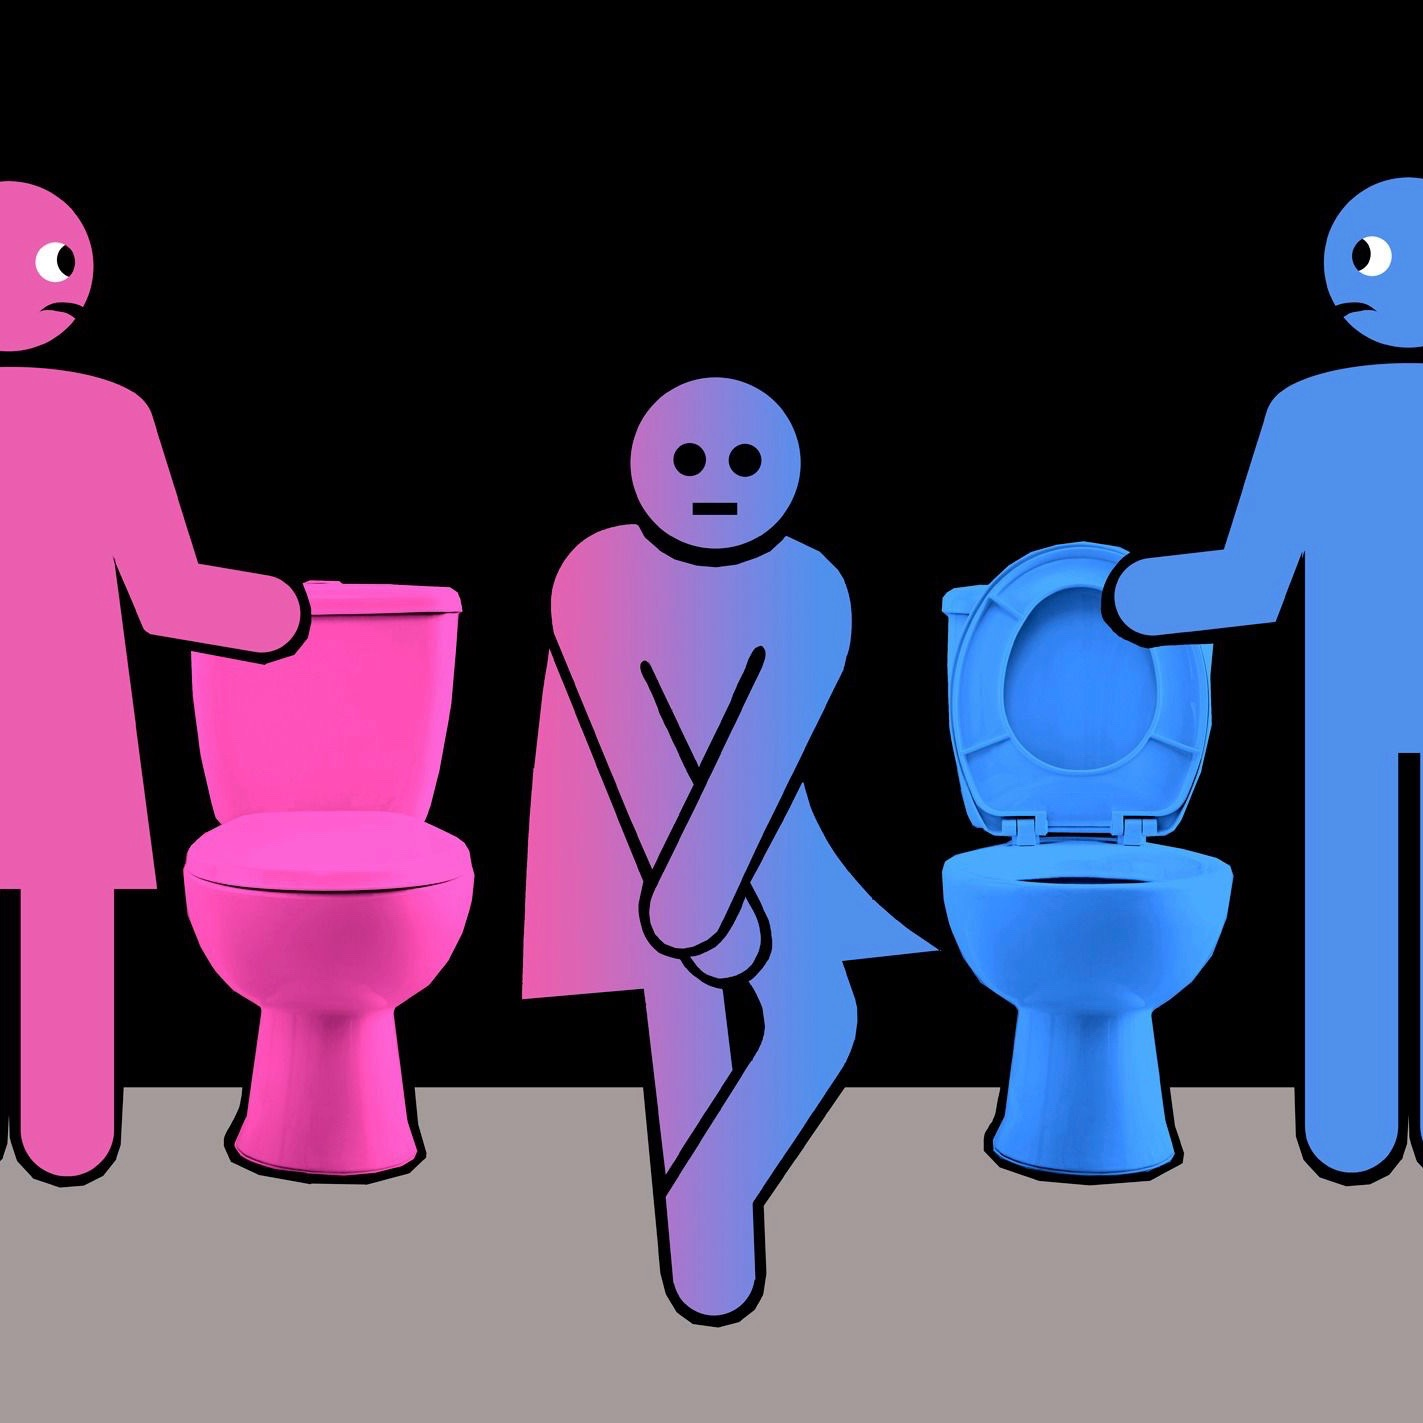 transgender bathrooms is a solution in search of a problem